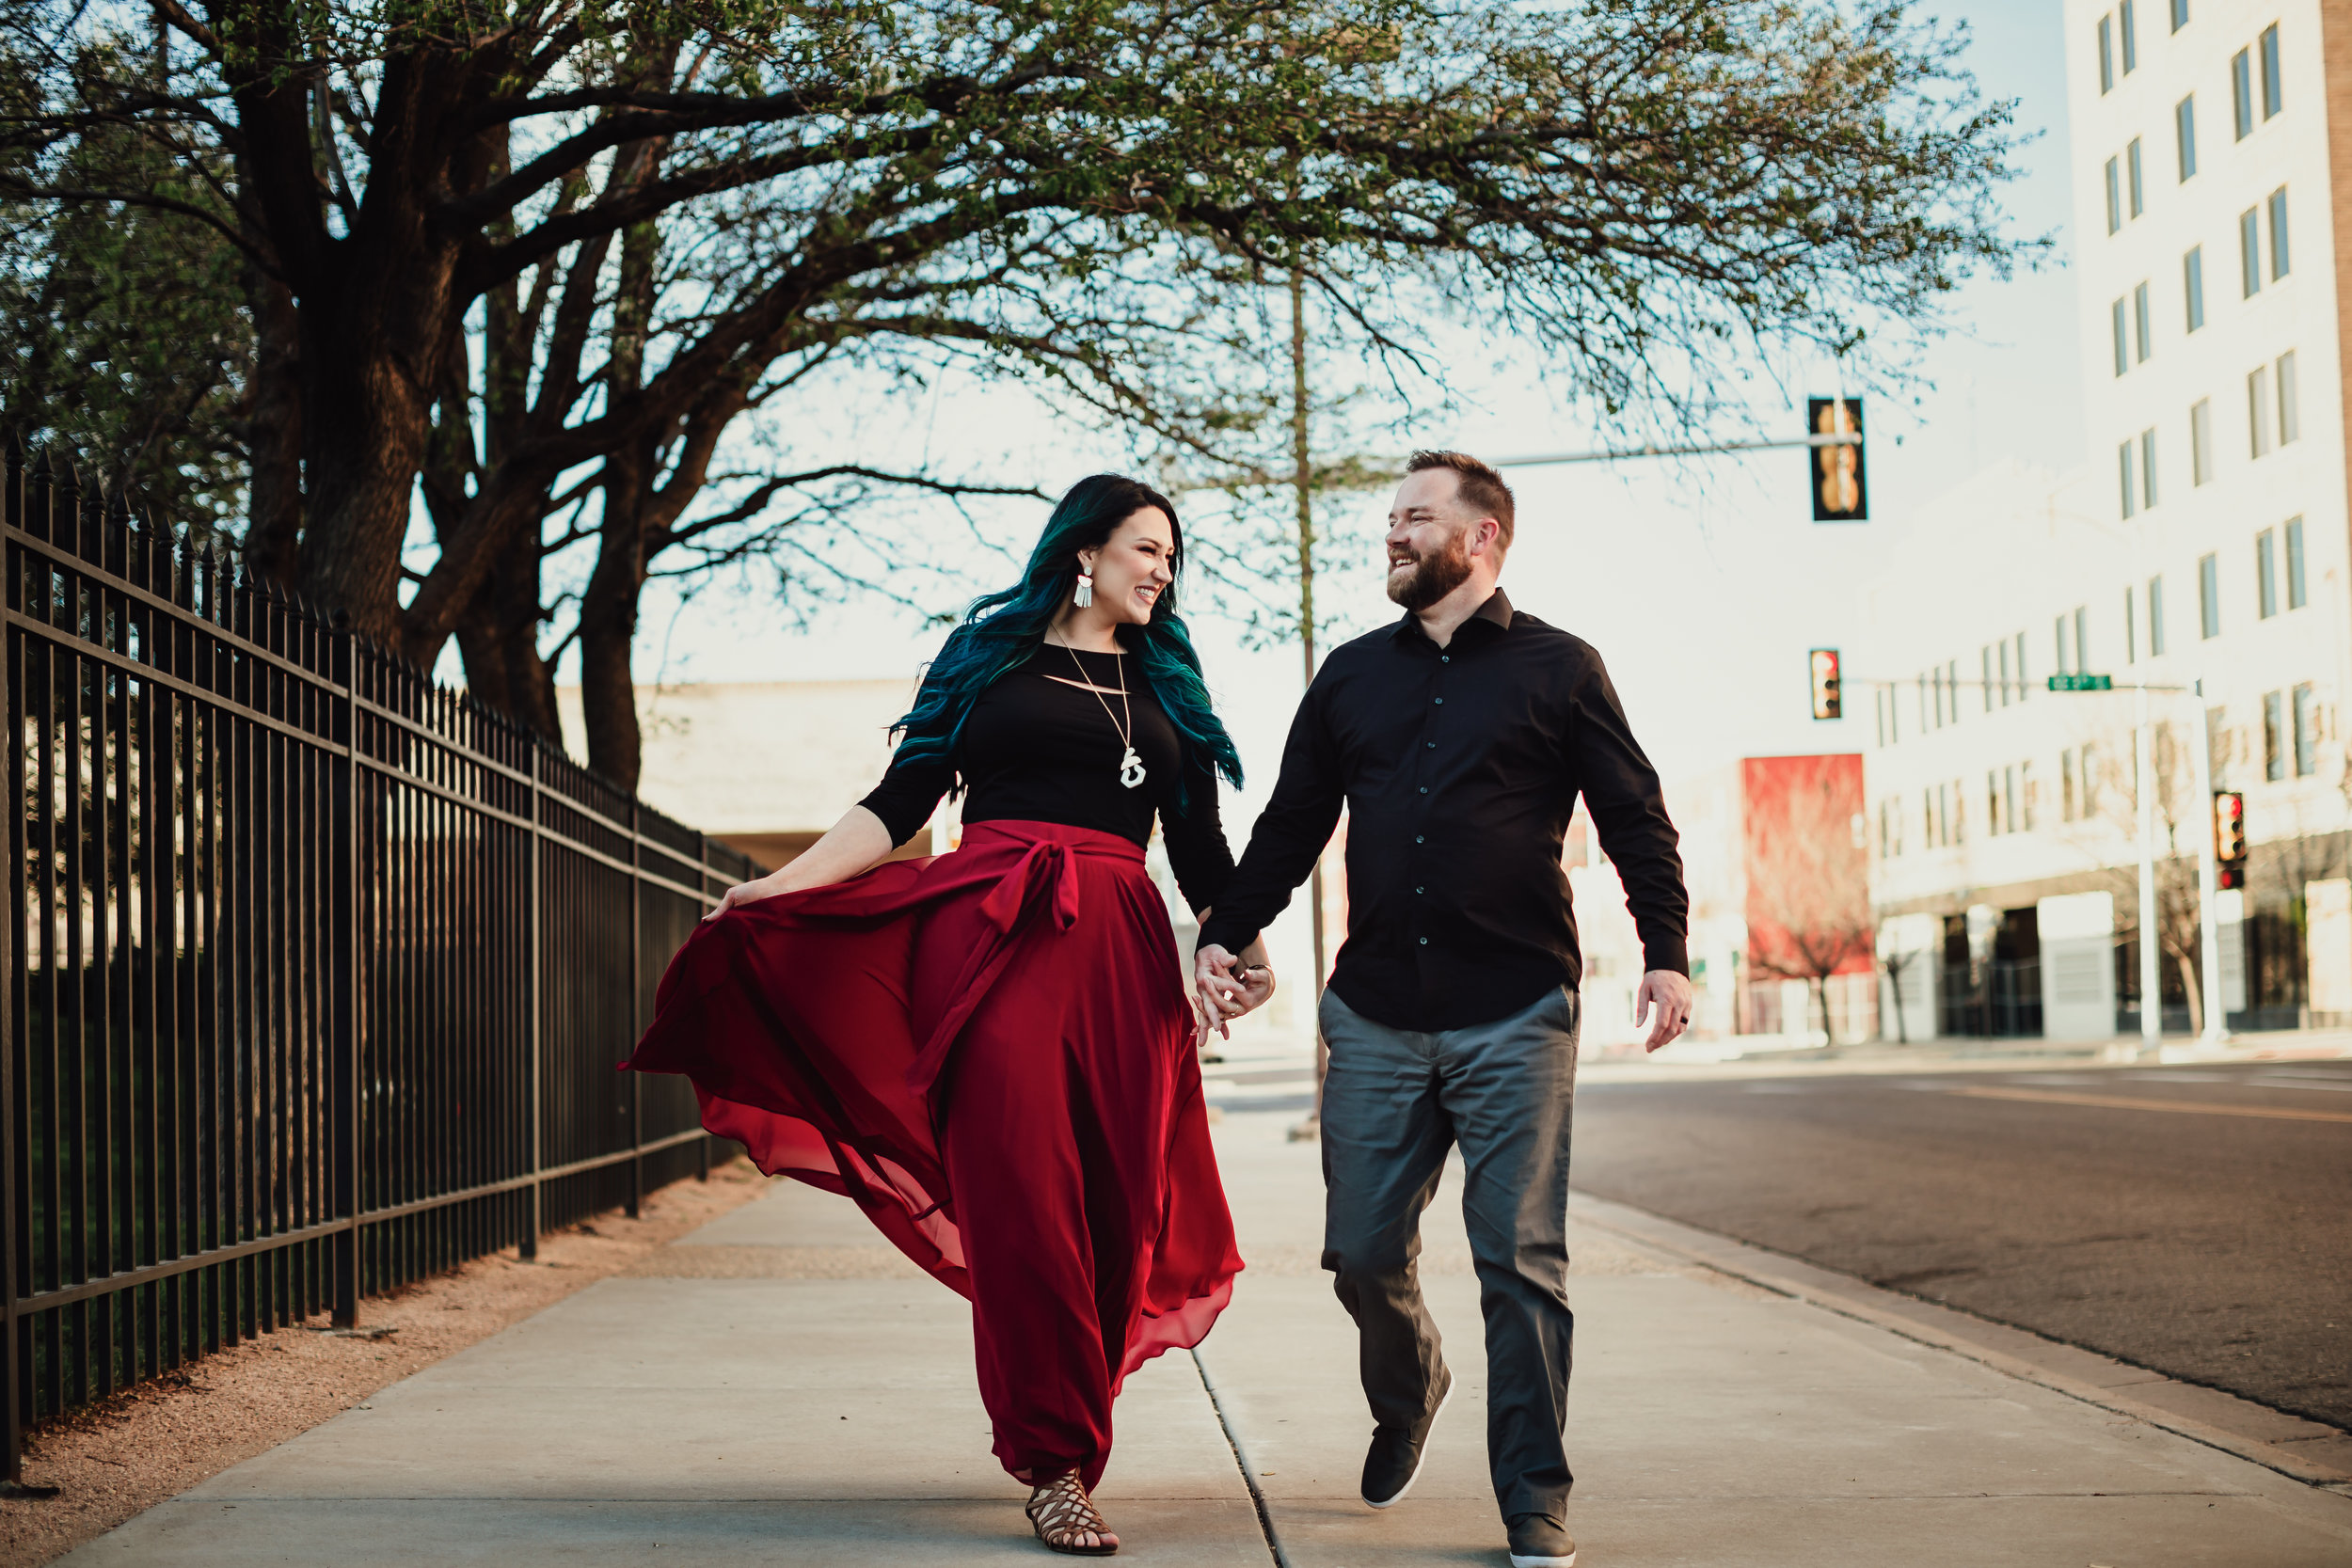 Couple photo walking adjacent to fence in downtown Amarillo together #rubyred #familyphotos #downtown #hairstyle #personality #amarillotexas #familyphotographer #lifestylephotos #amarillophotographer #locationchoice #texasfamilyphotos #familyofthree